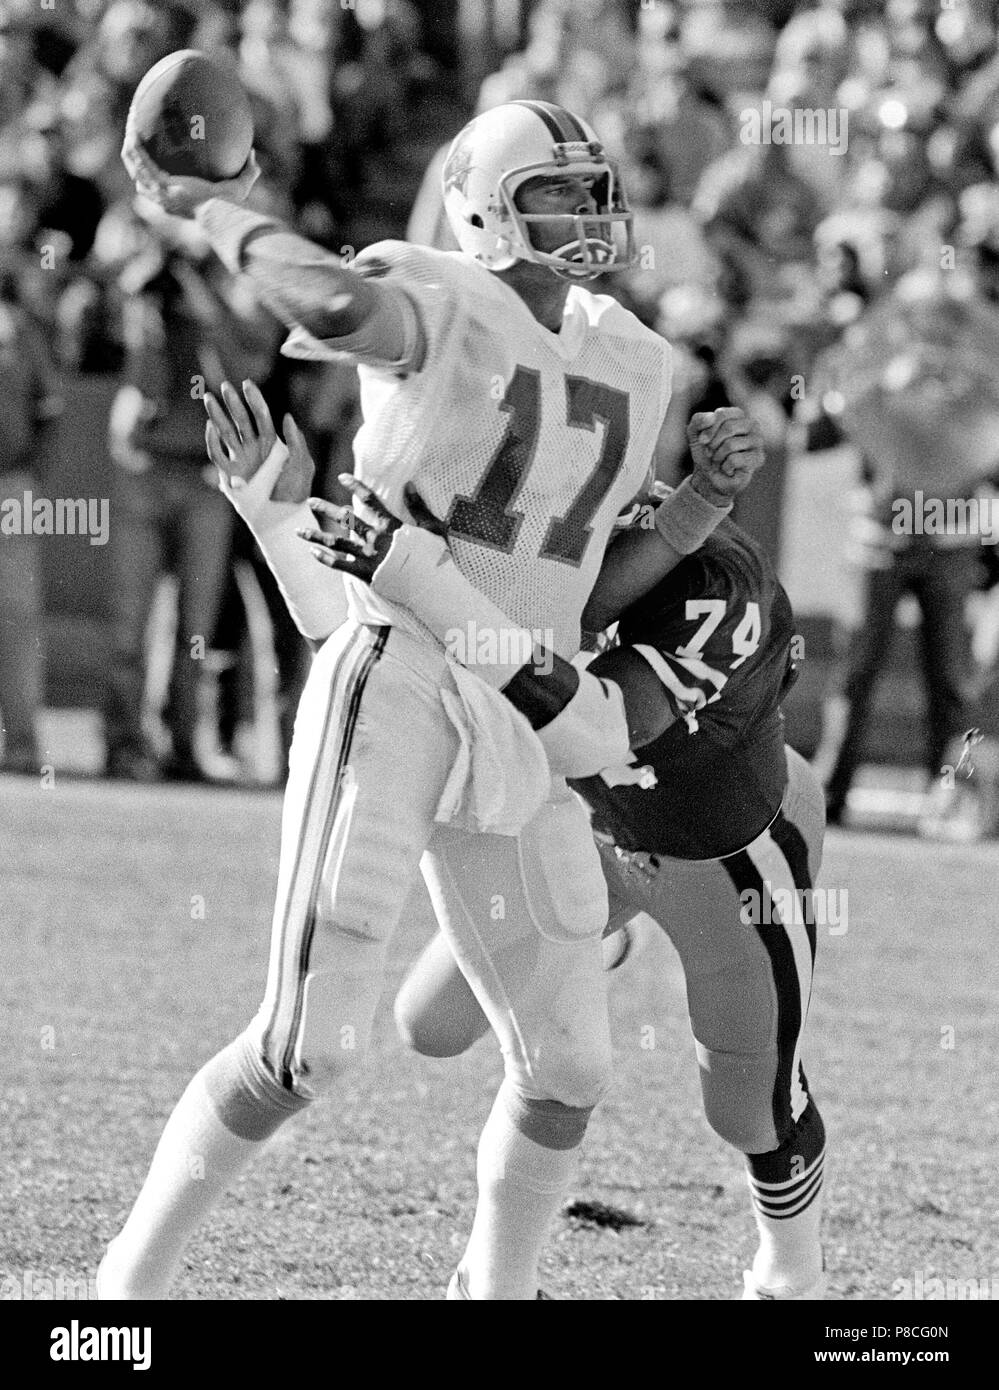 San Francisco, California, USA. 18th Nov, 1984. San Francisco 49ers vs. Tampa Bay Buccaneers at Candlestick Park Sunday, November 18, 1984. 49ers beat the buccaneers 24-17. San Francisco 49ers Defensive End Fred Dean (74) sacks Tampa Bay Buccaneers Quarterback Steve DeBerg Credit: Al Golub/ZUMA Wire/Alamy Live News Stock Photo